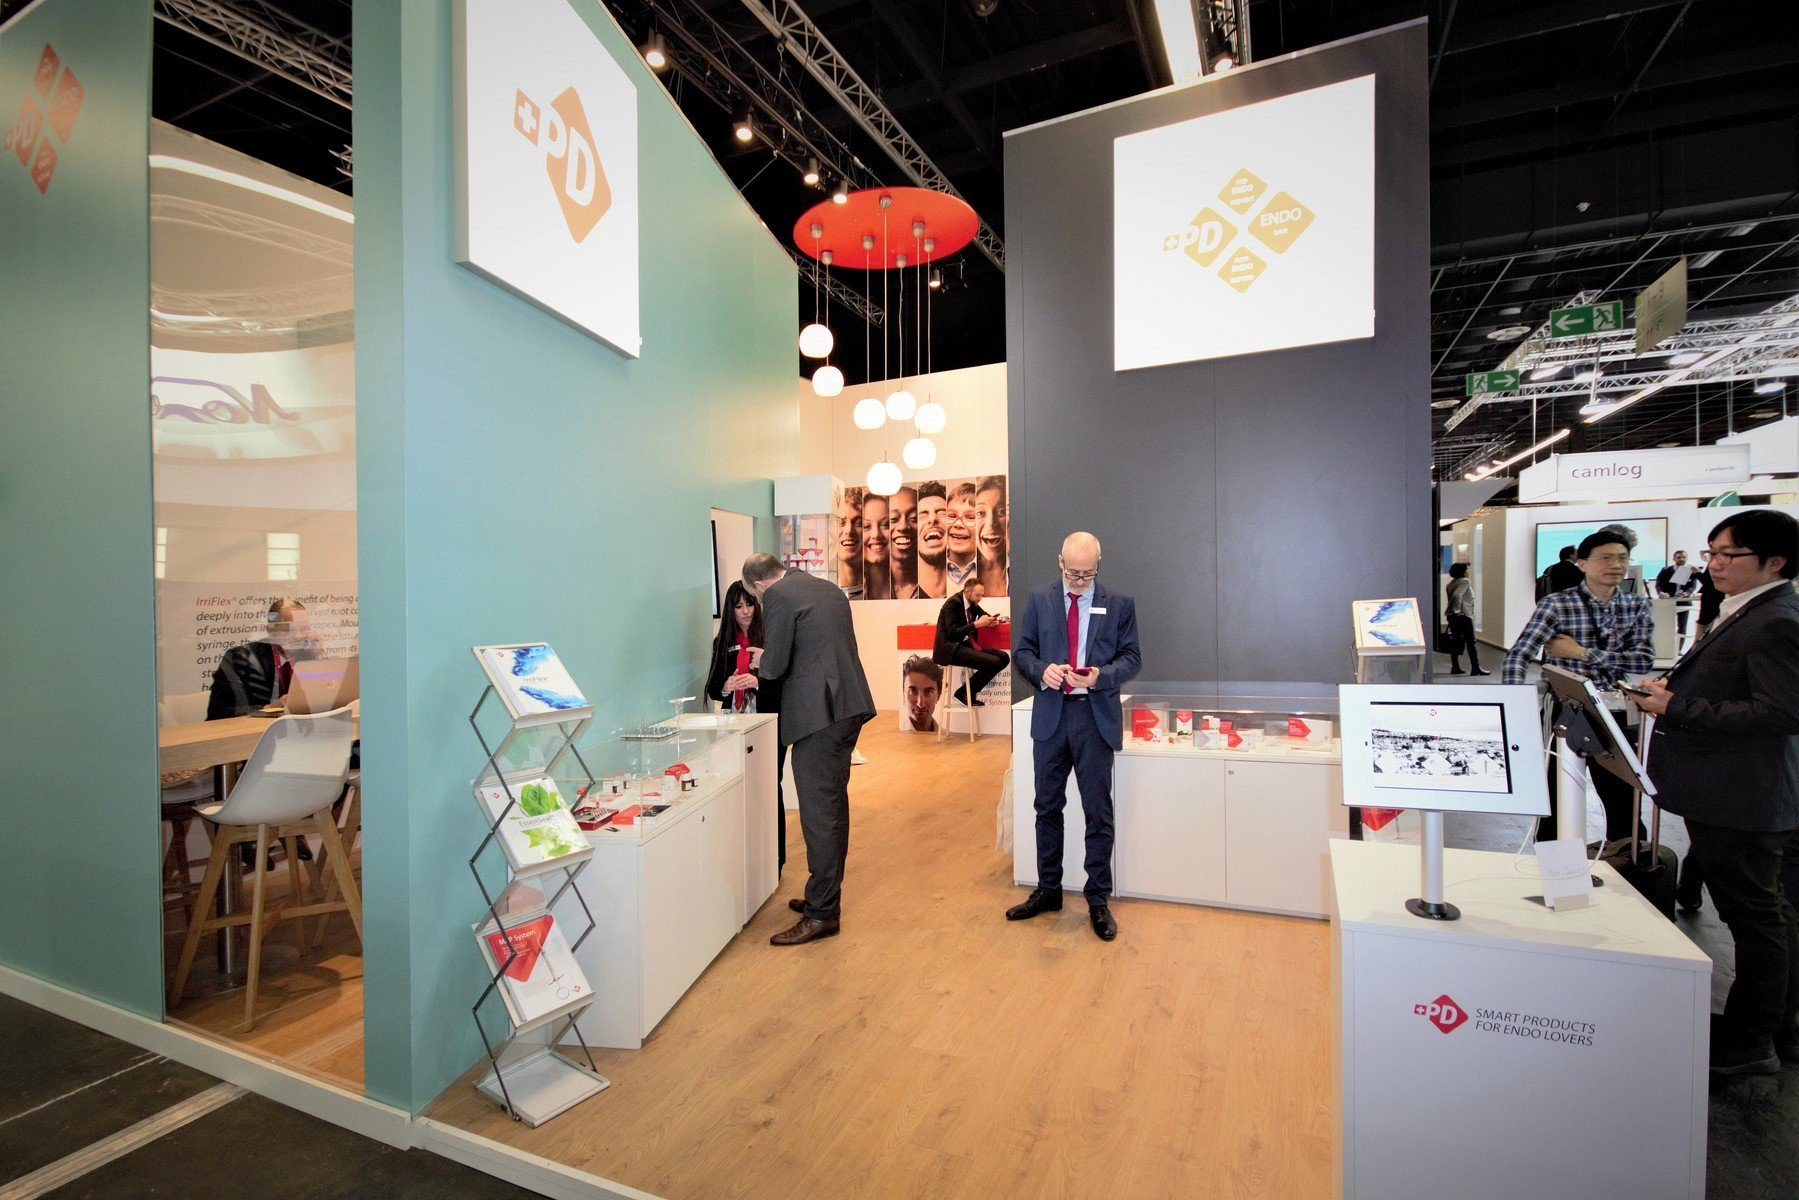 Produits Dentaires Sa Koeln Internationale Dental Show Cologne Messestand Messebau Messebauer 4